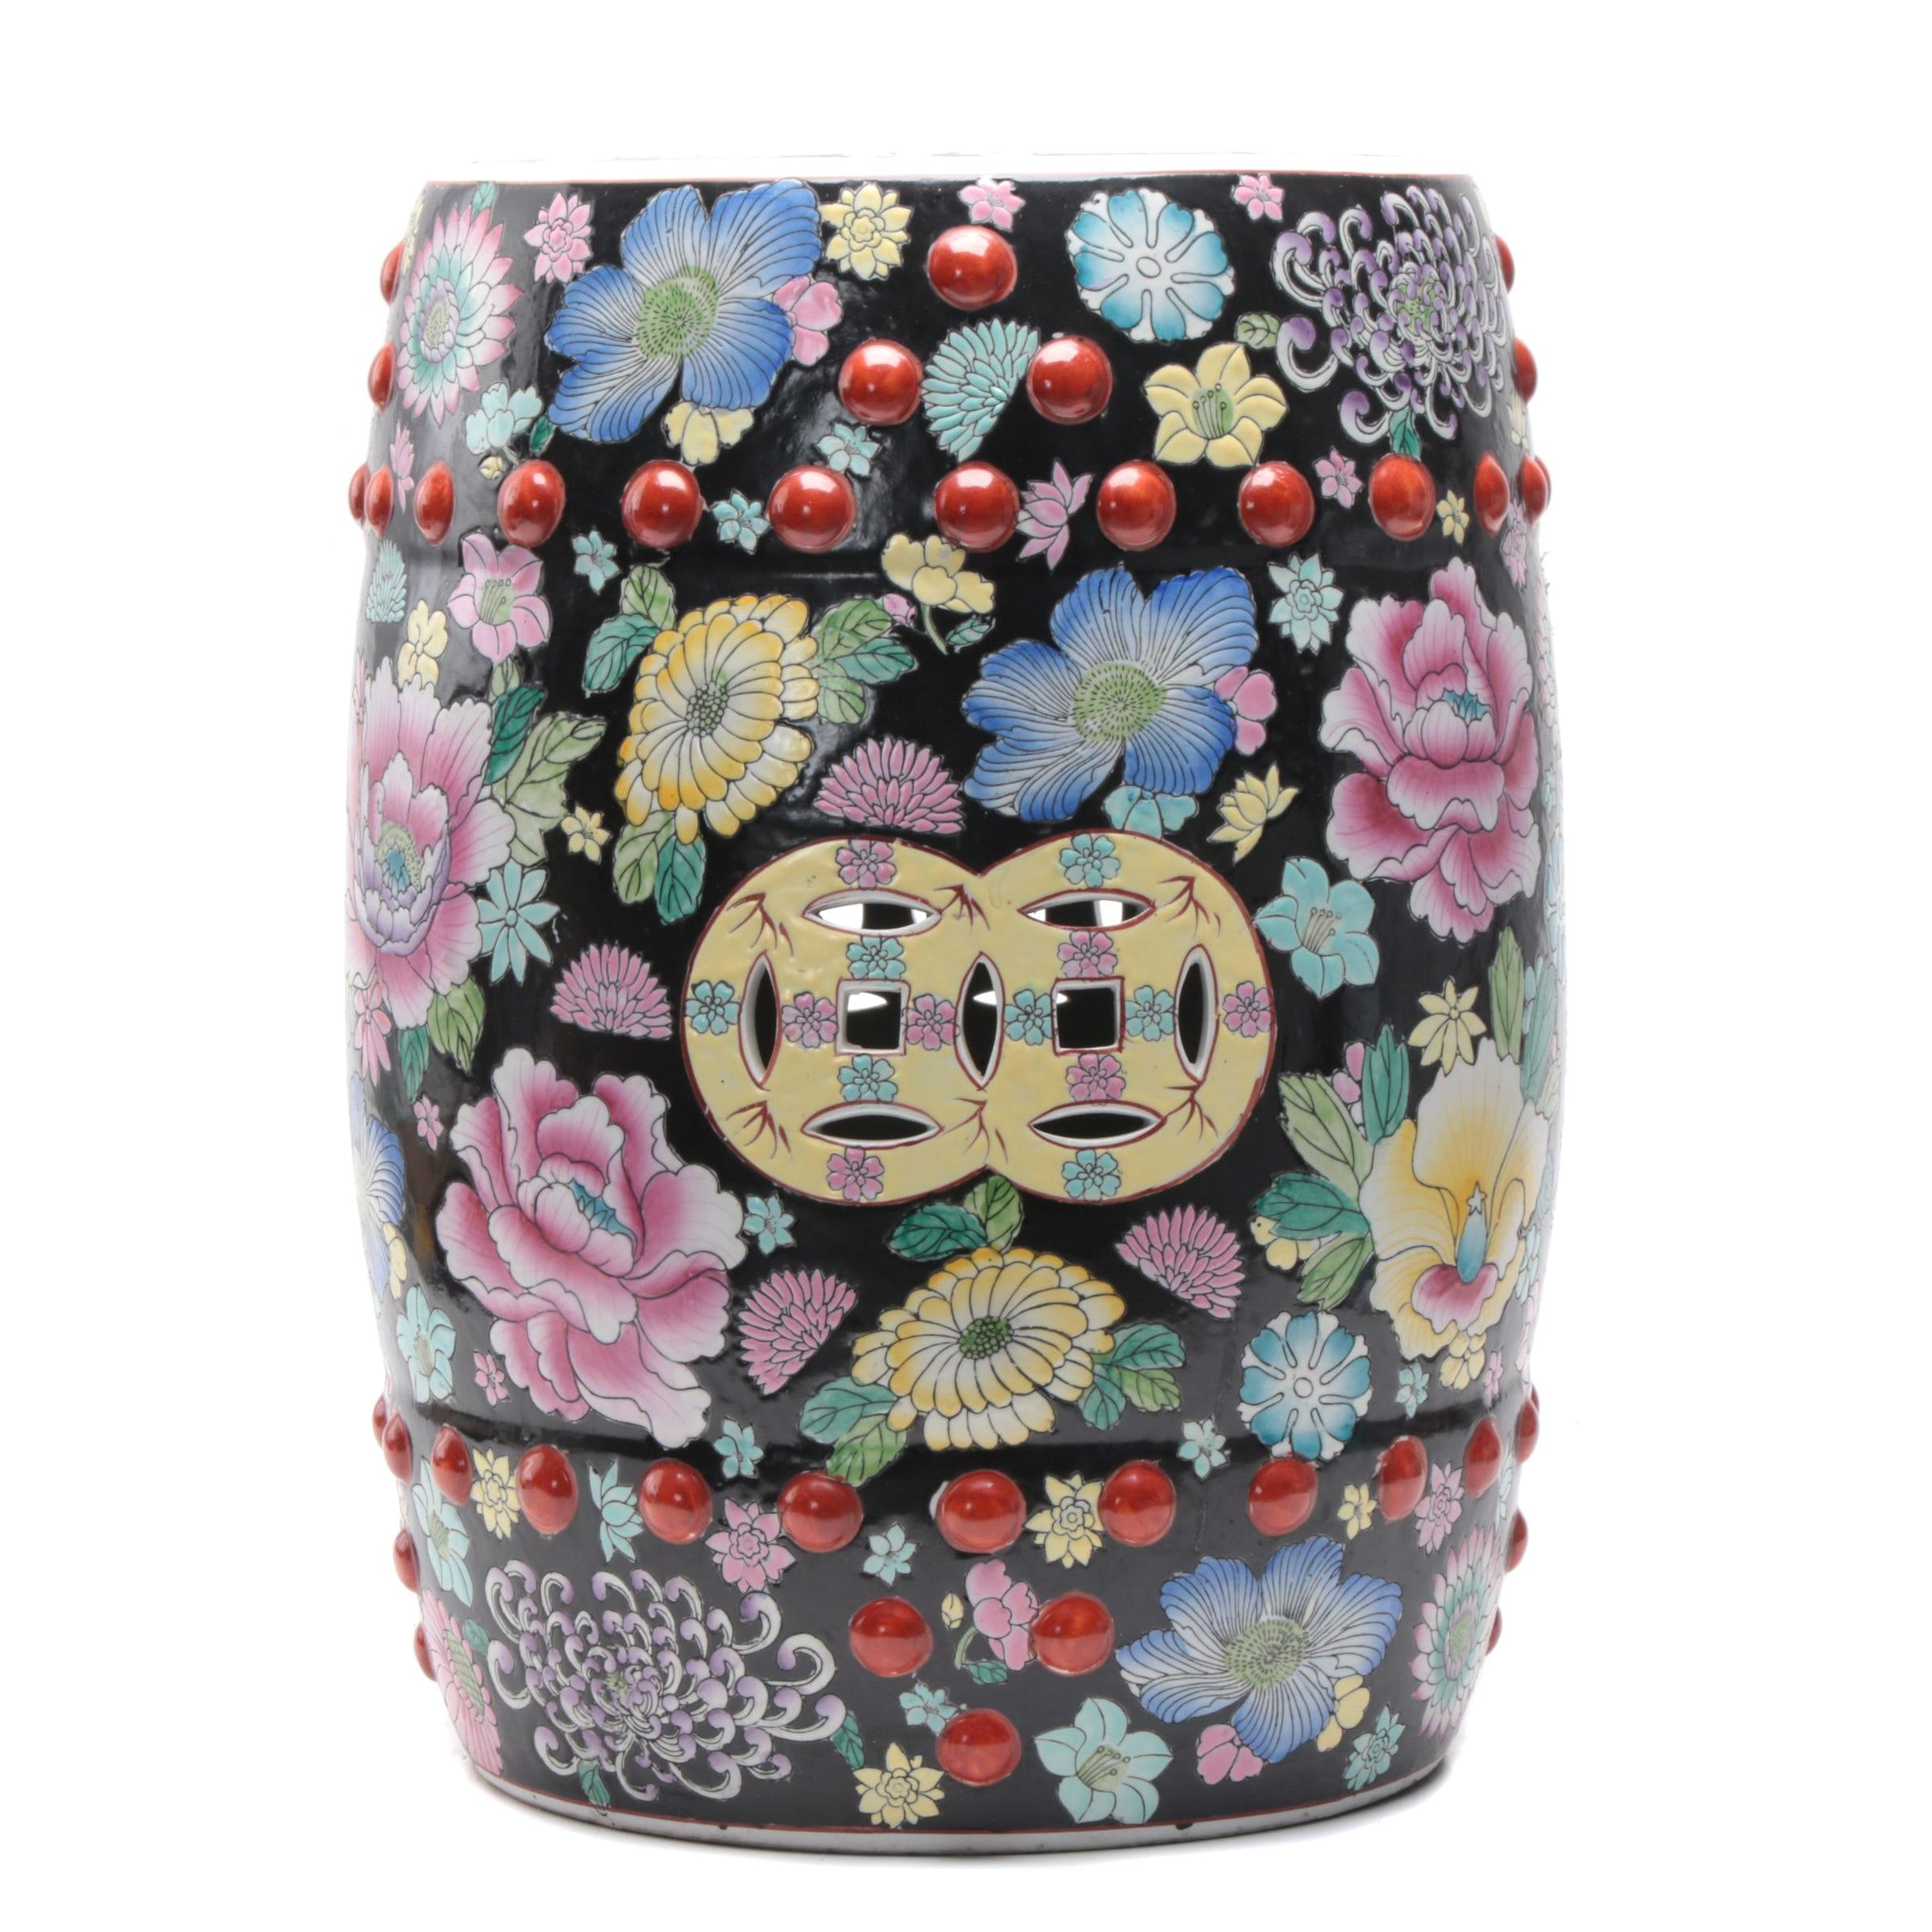 Chinese Famille Noire Style Ceramic Garden Stool